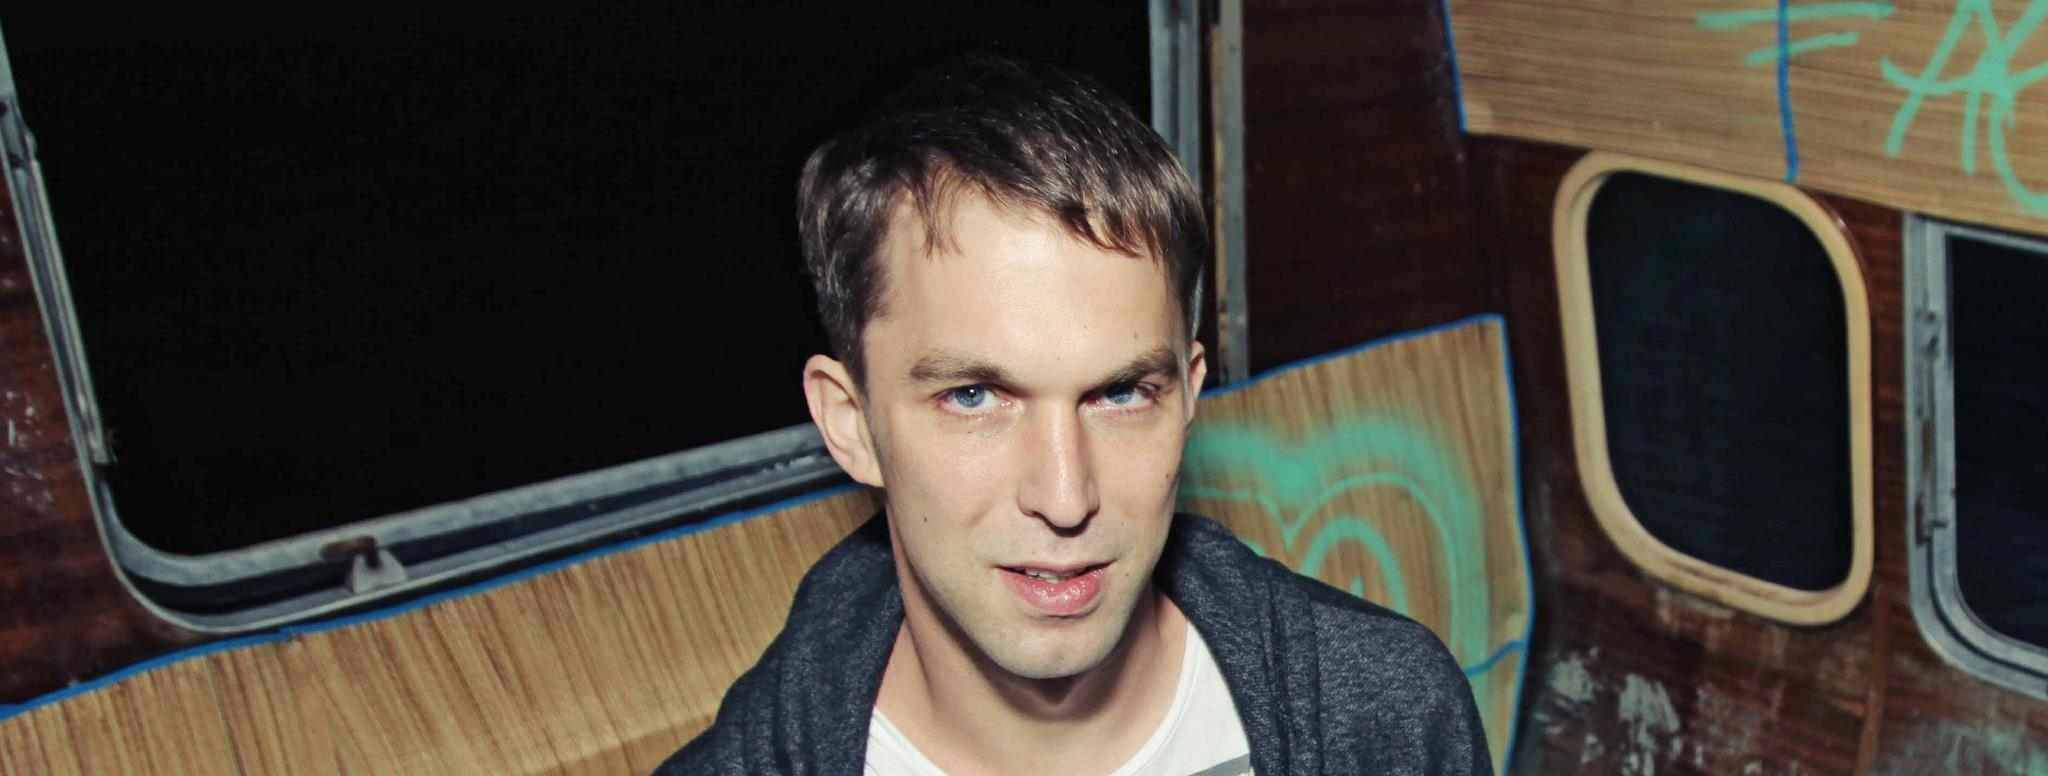 Ryan Crosson b2b Shaun ReeveS - live at Loveland Festival 2014 (Visionquest Showcase), Amsterdam Dance Event - October 2014